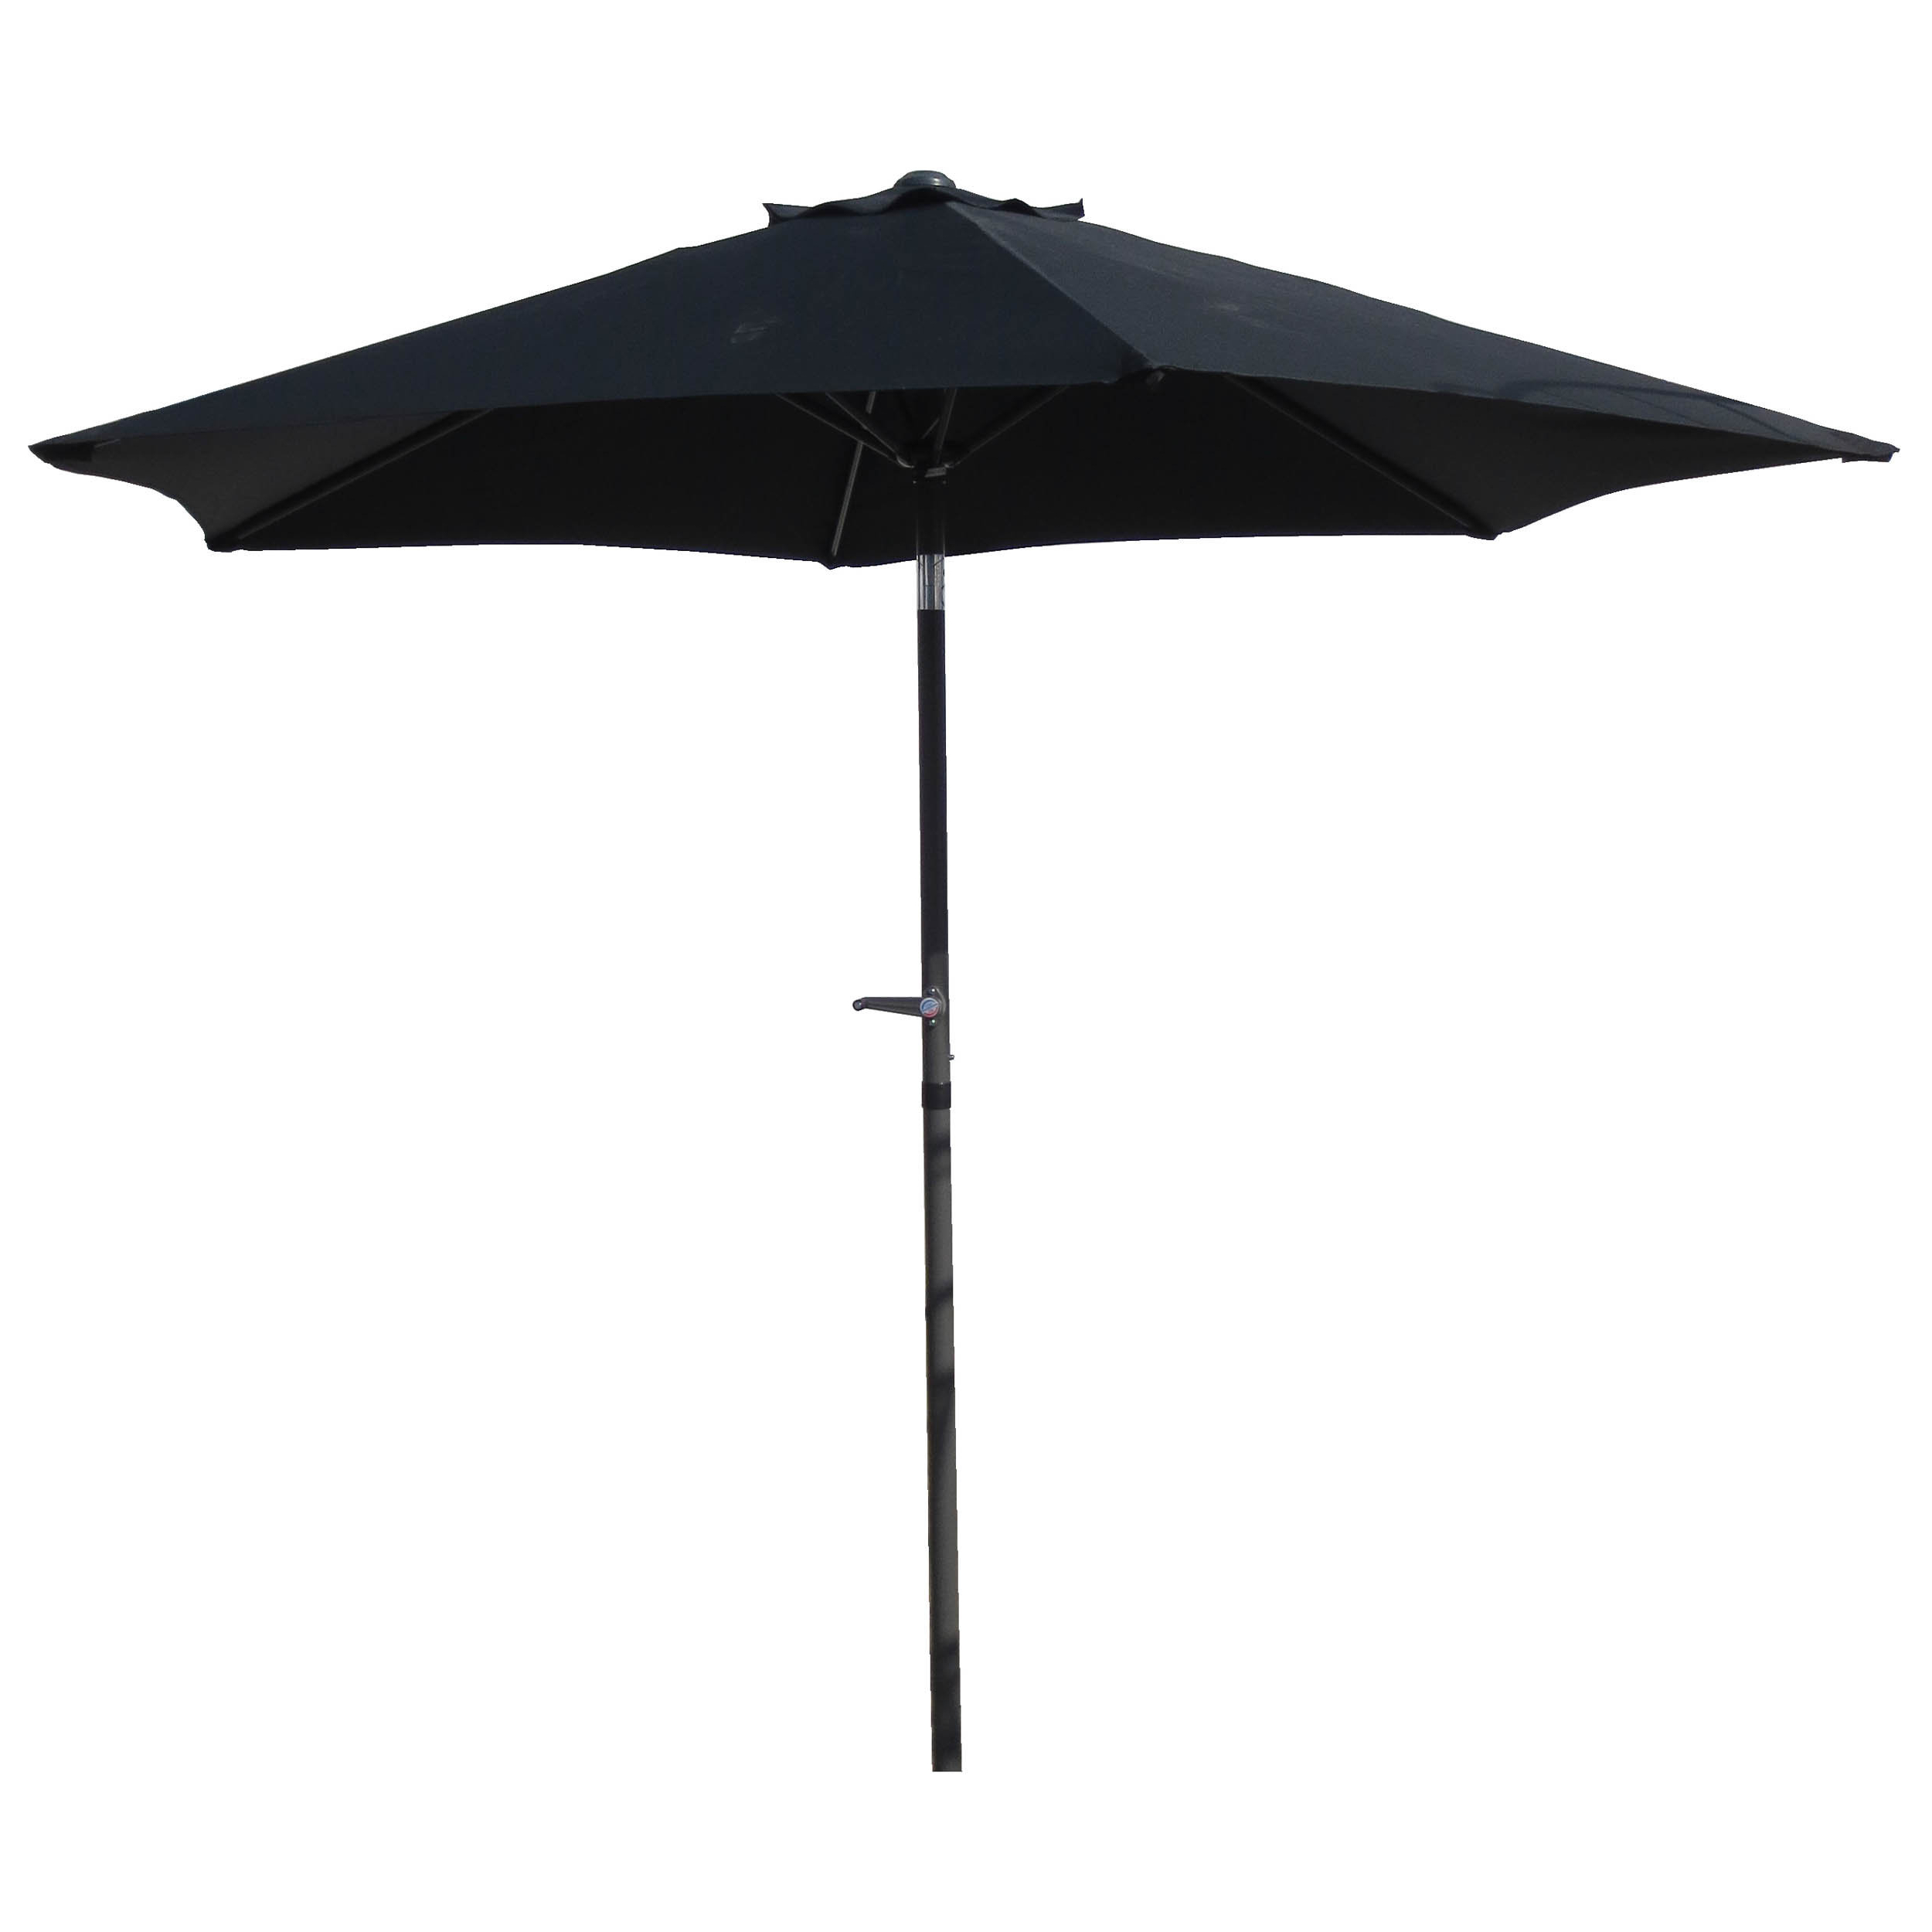 Brayden Studio Hyperion 8.5' Market Umbrella With Regard To Most Recently Released Devansh Market Umbrellas (Gallery 12 of 20)